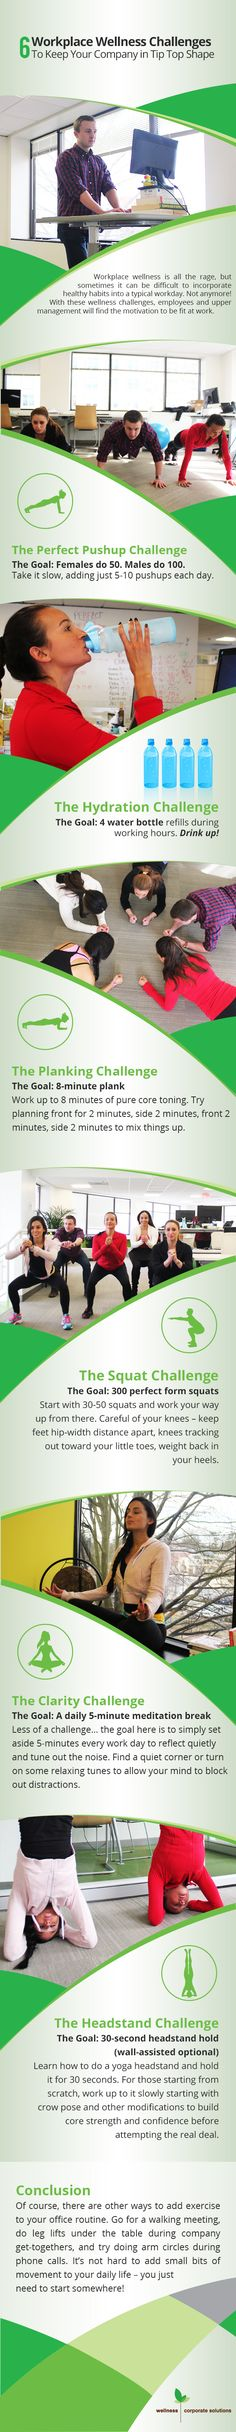 6 Workplace Wellness Challenges: Keep Your Company in Tip Top Shape #infographic